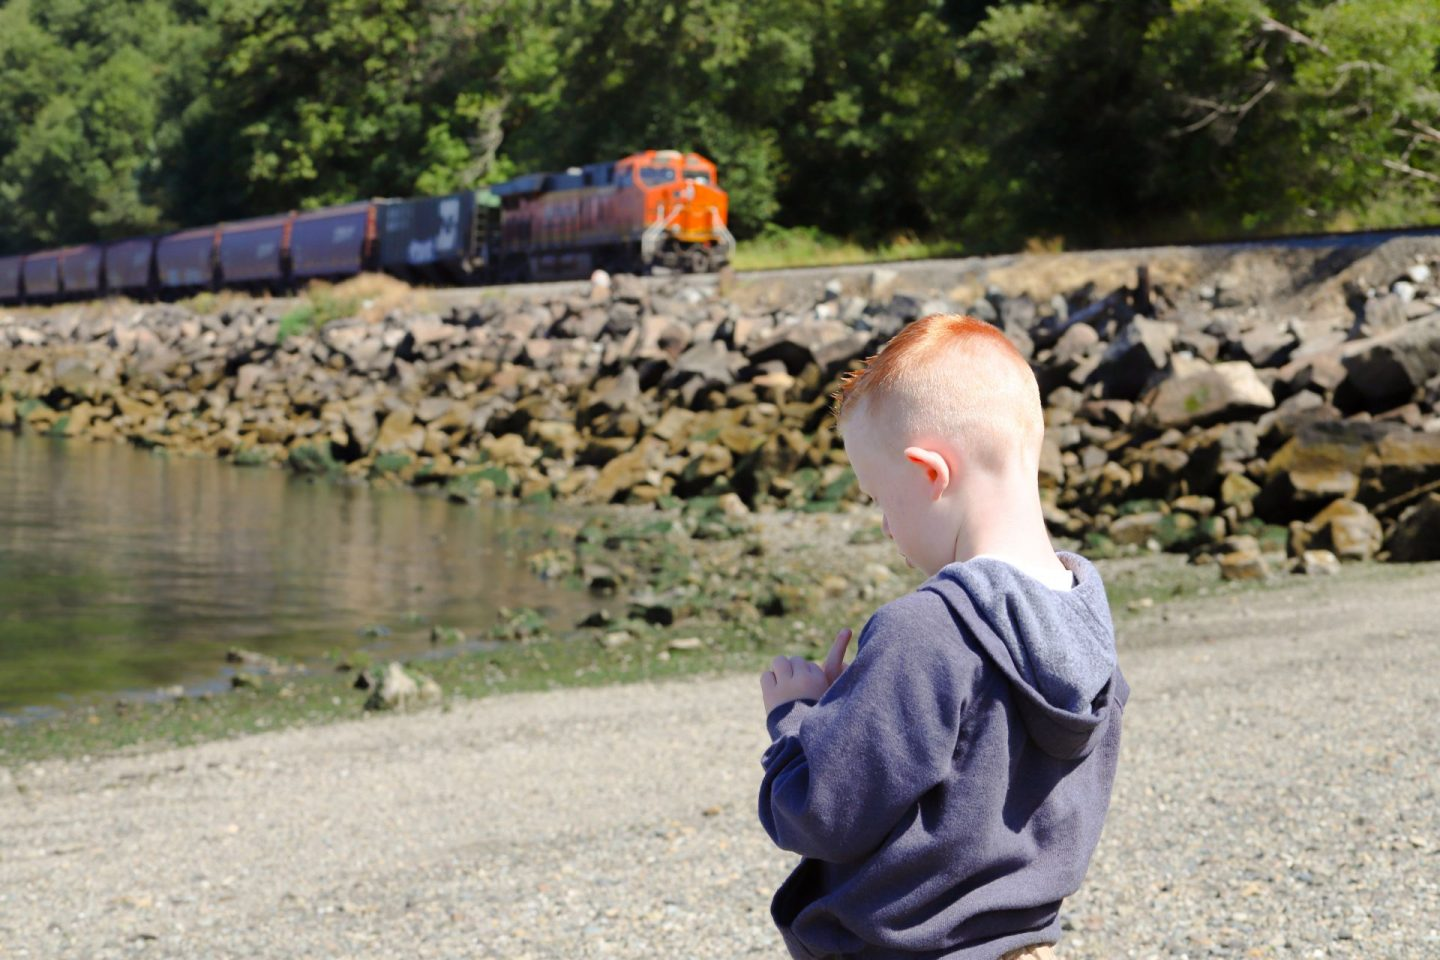 trains at solo point